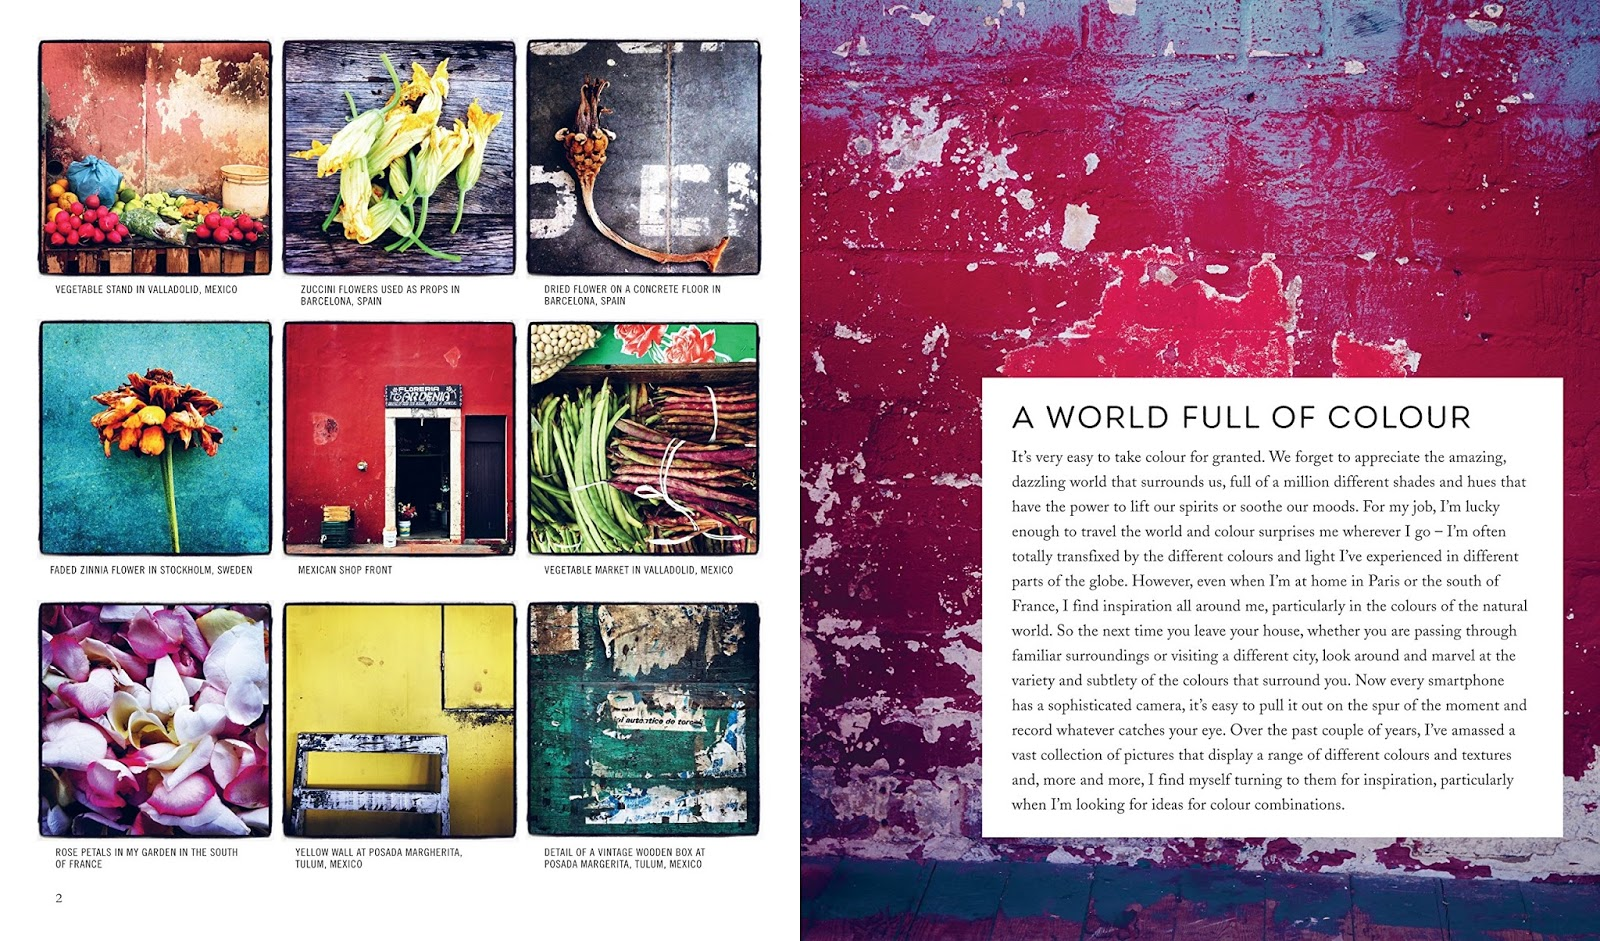 book color me beautiful : In This Book His Third He Reveals His Way Of Seeing Color Navigating Us With Beautiful Photography By Debi Treloar Through Palettes Pale To Dark